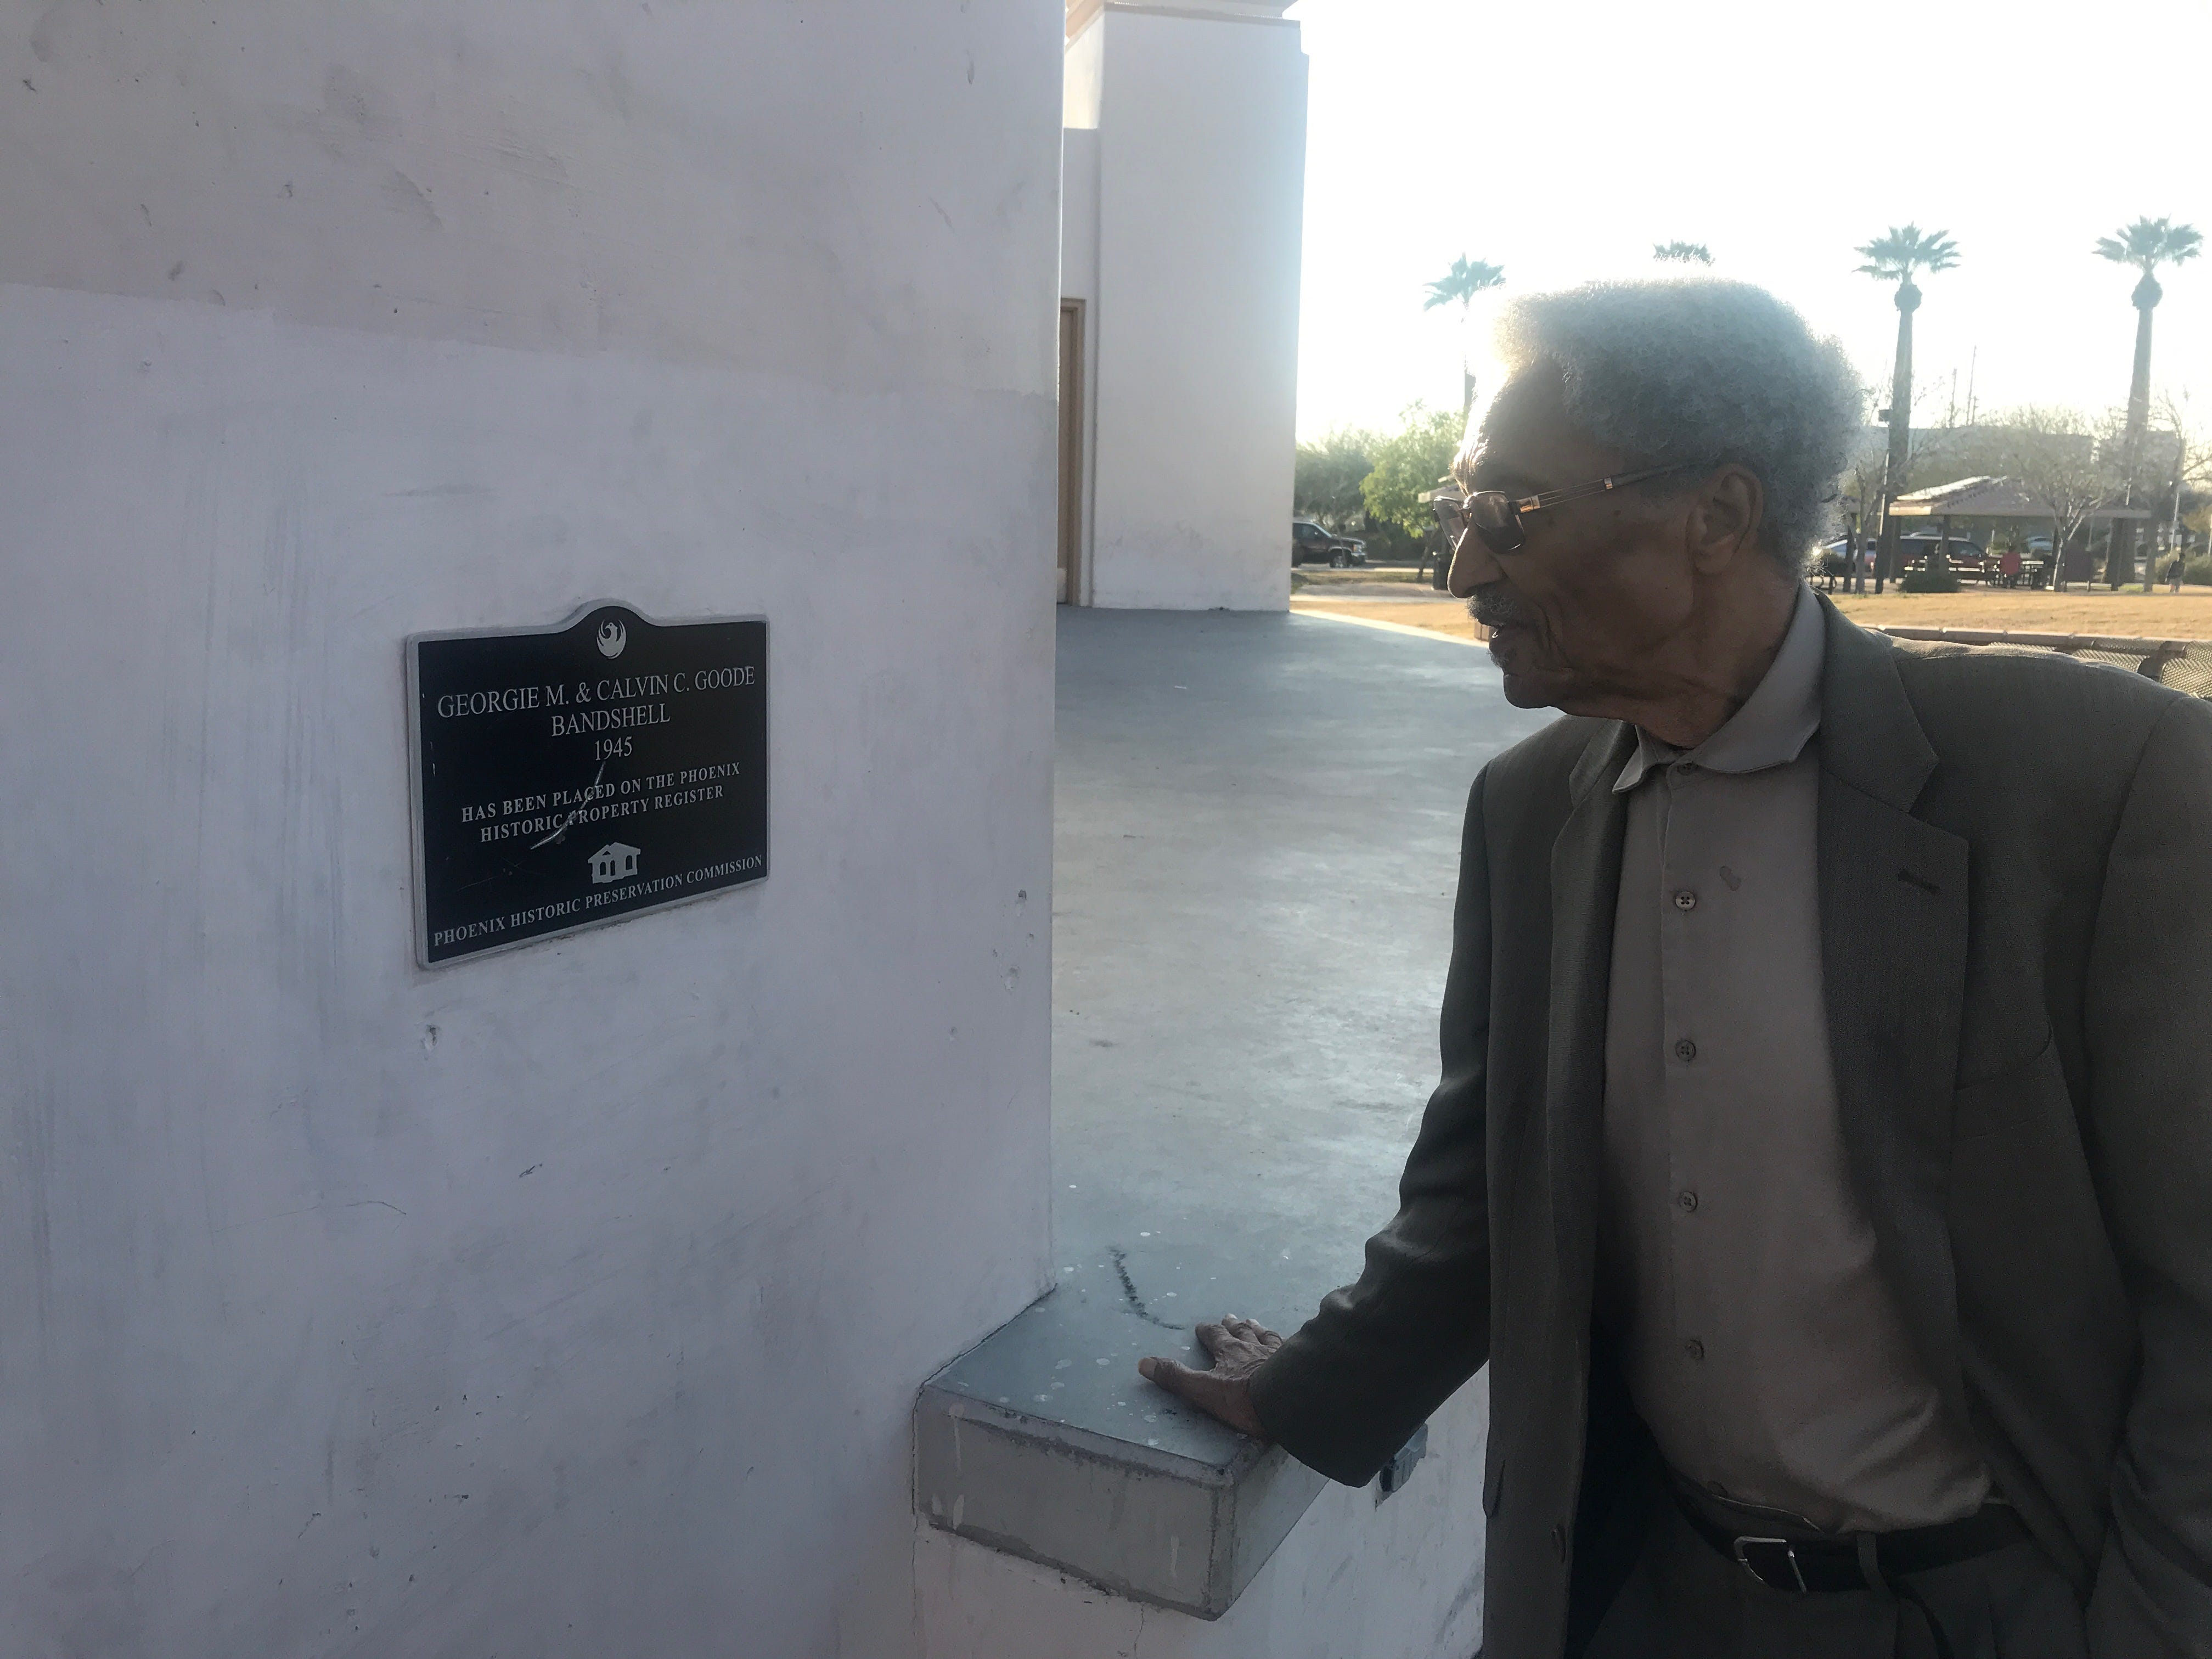 Calvin Goode looks at the amphitheater sign bearing his name on Wednesday, Feb. 27, 2019.